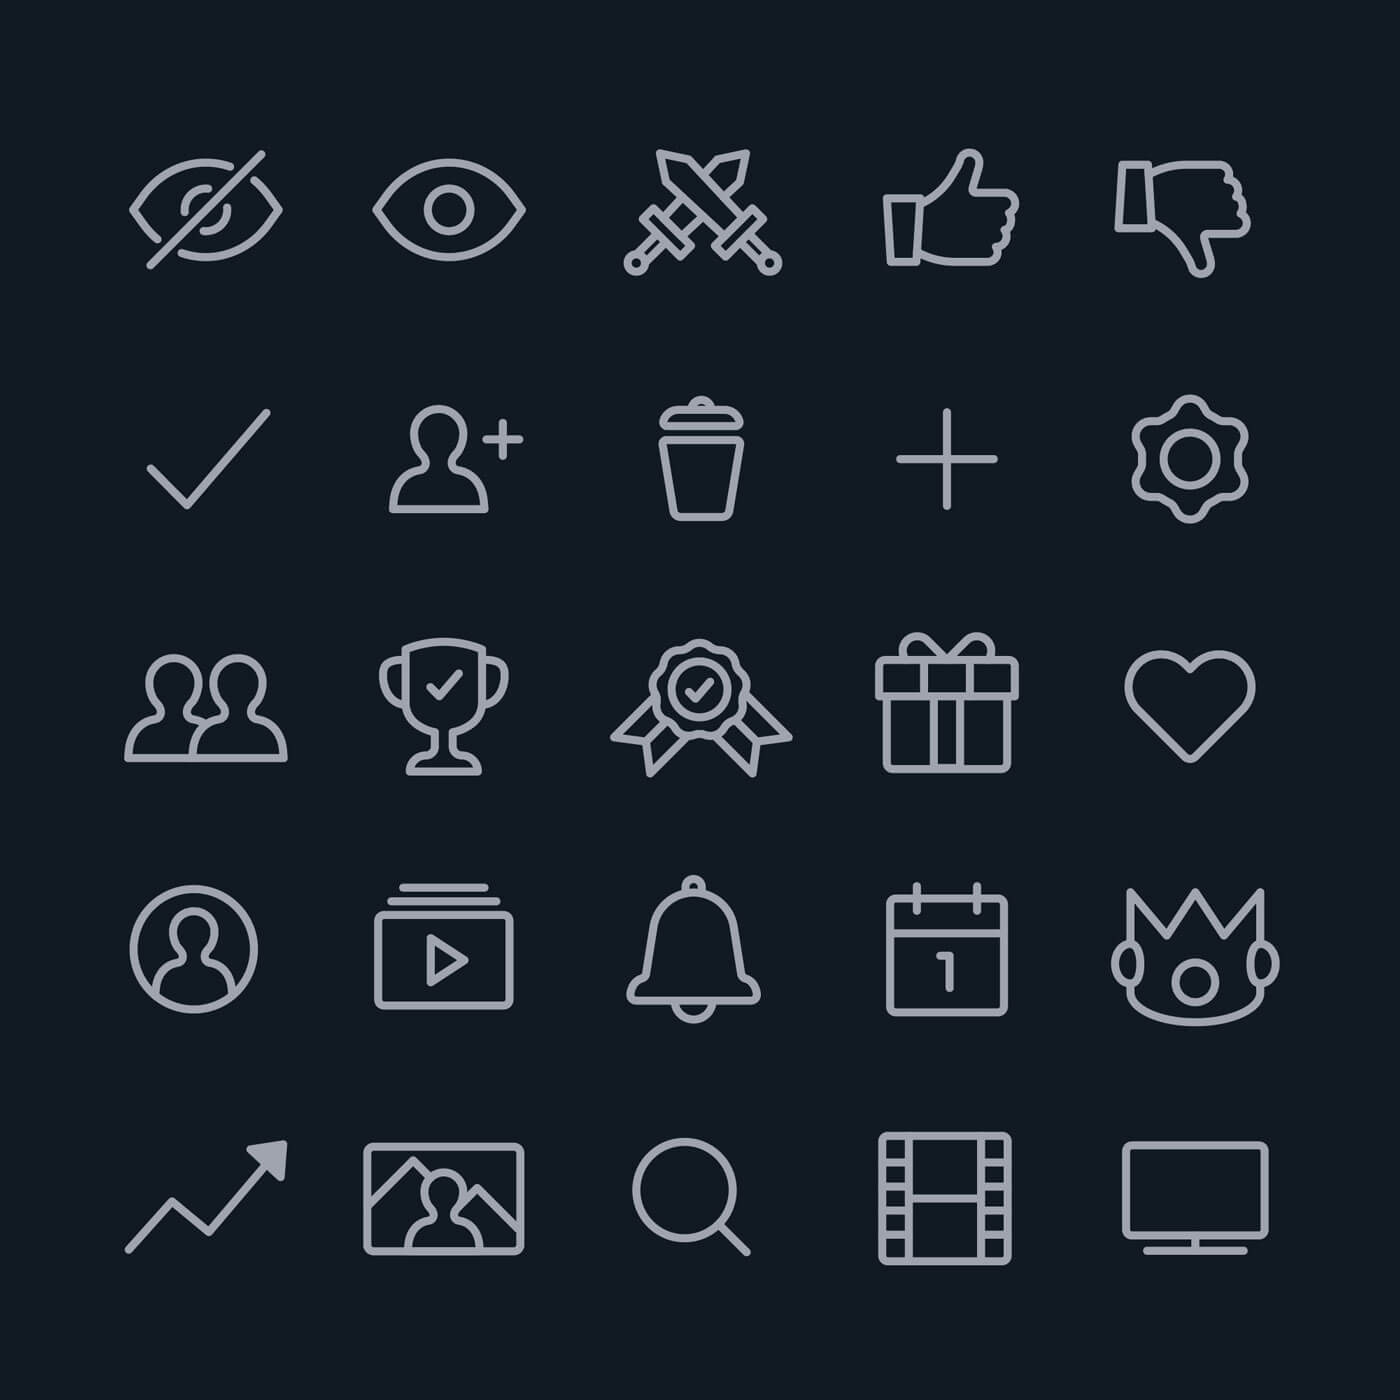 A collection of icons, including a bell for alerts and a thumbs up for liking items